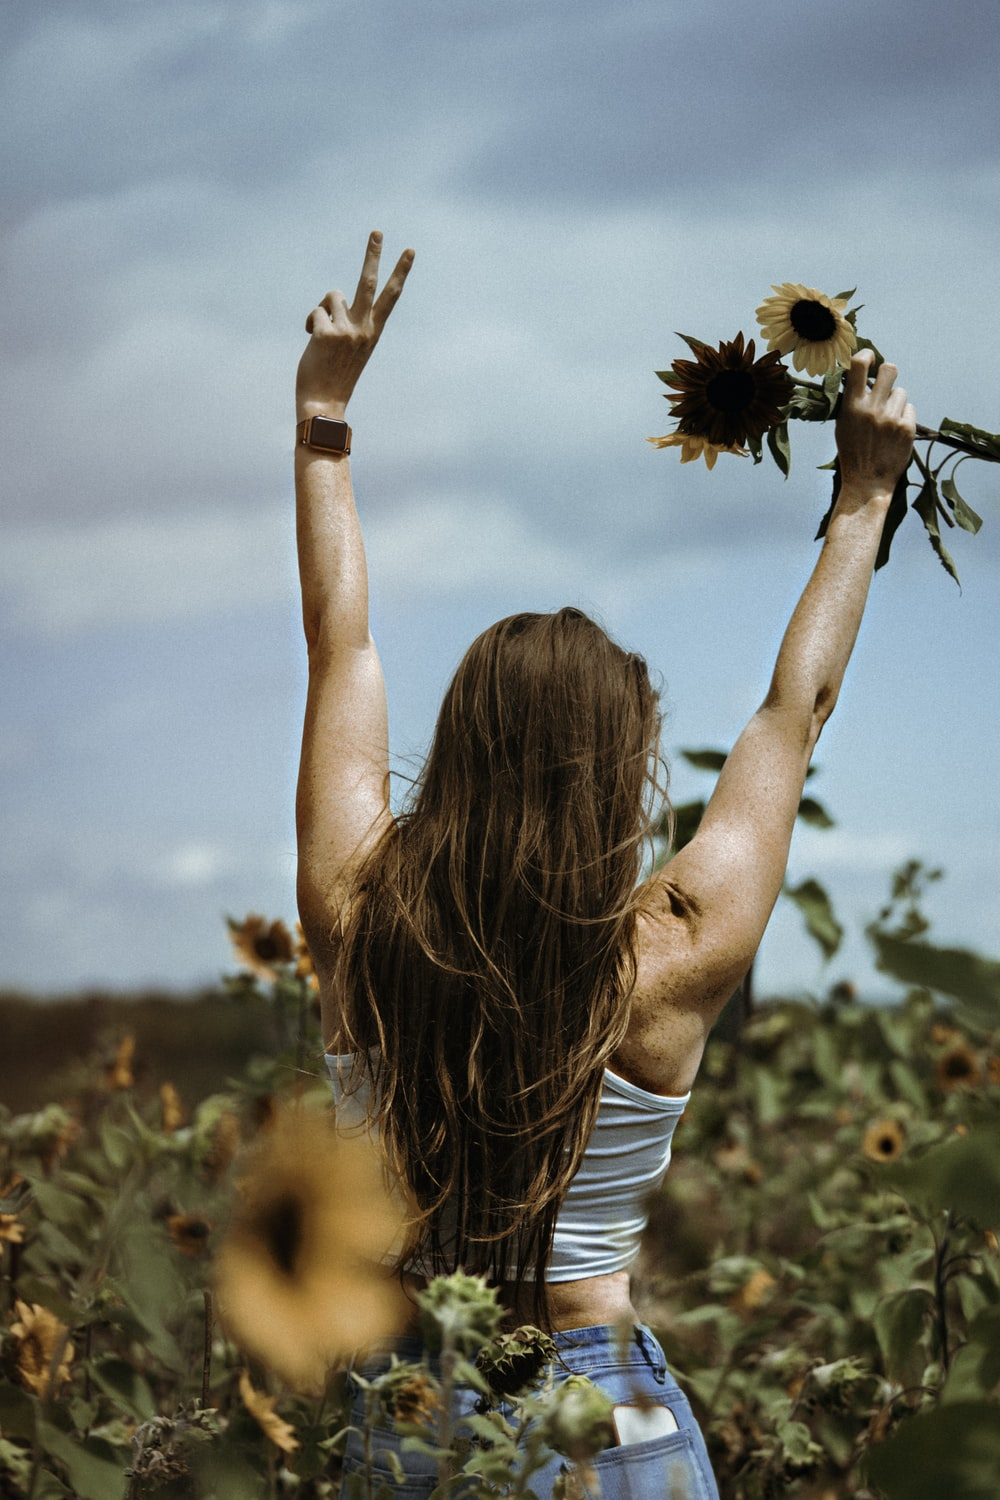 woman in white tank top holding sunflower during daytime